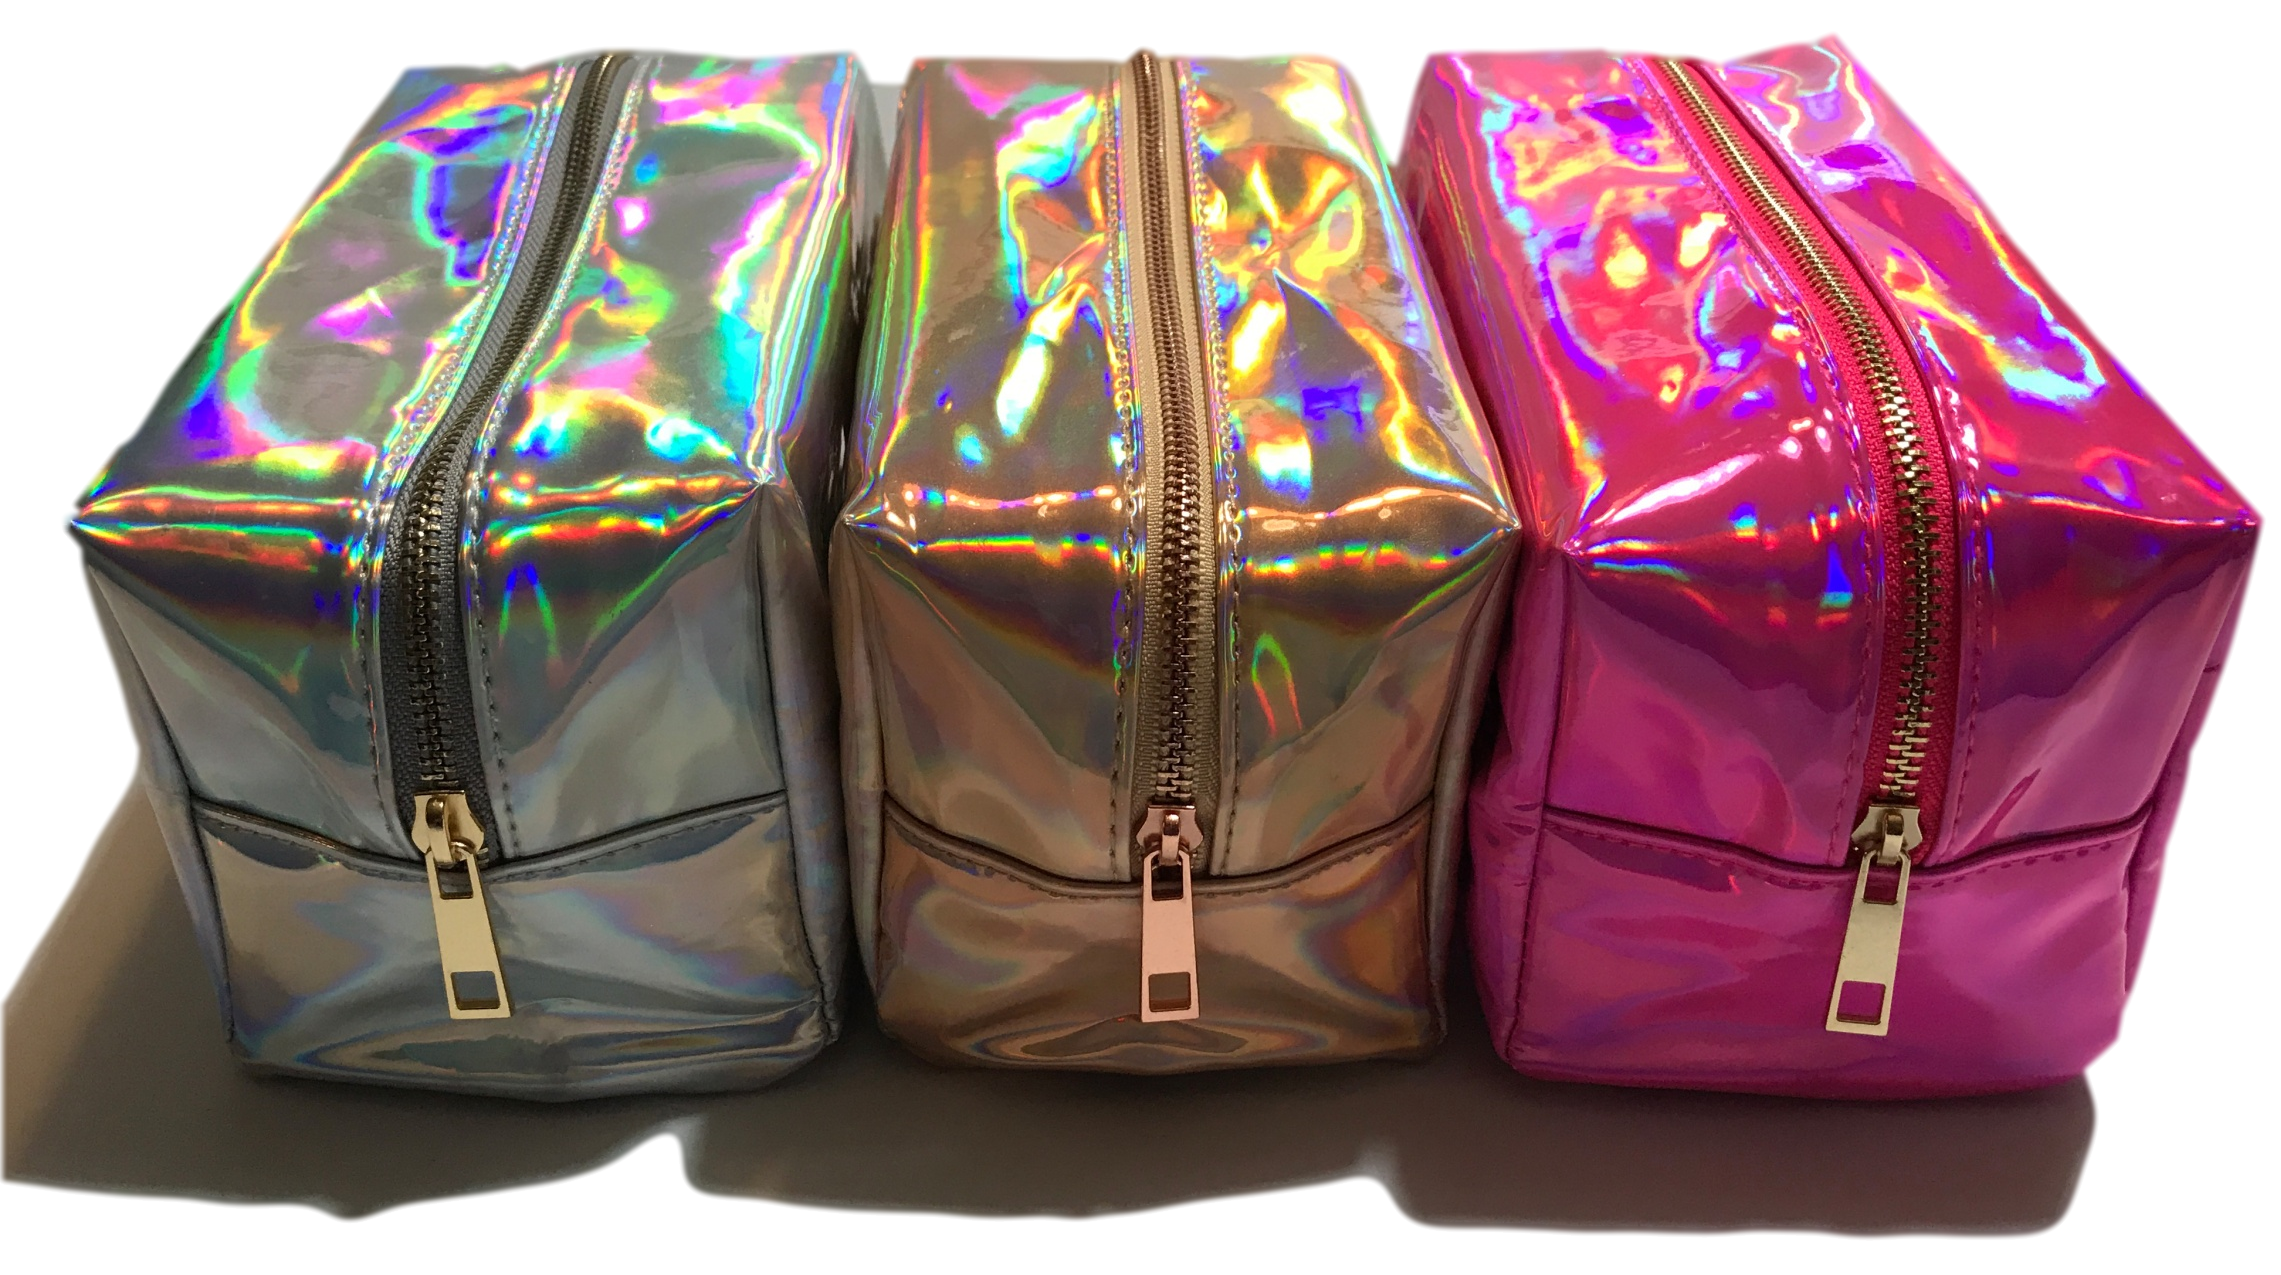 Stunning Holographic Makeup Bags are here! We had these